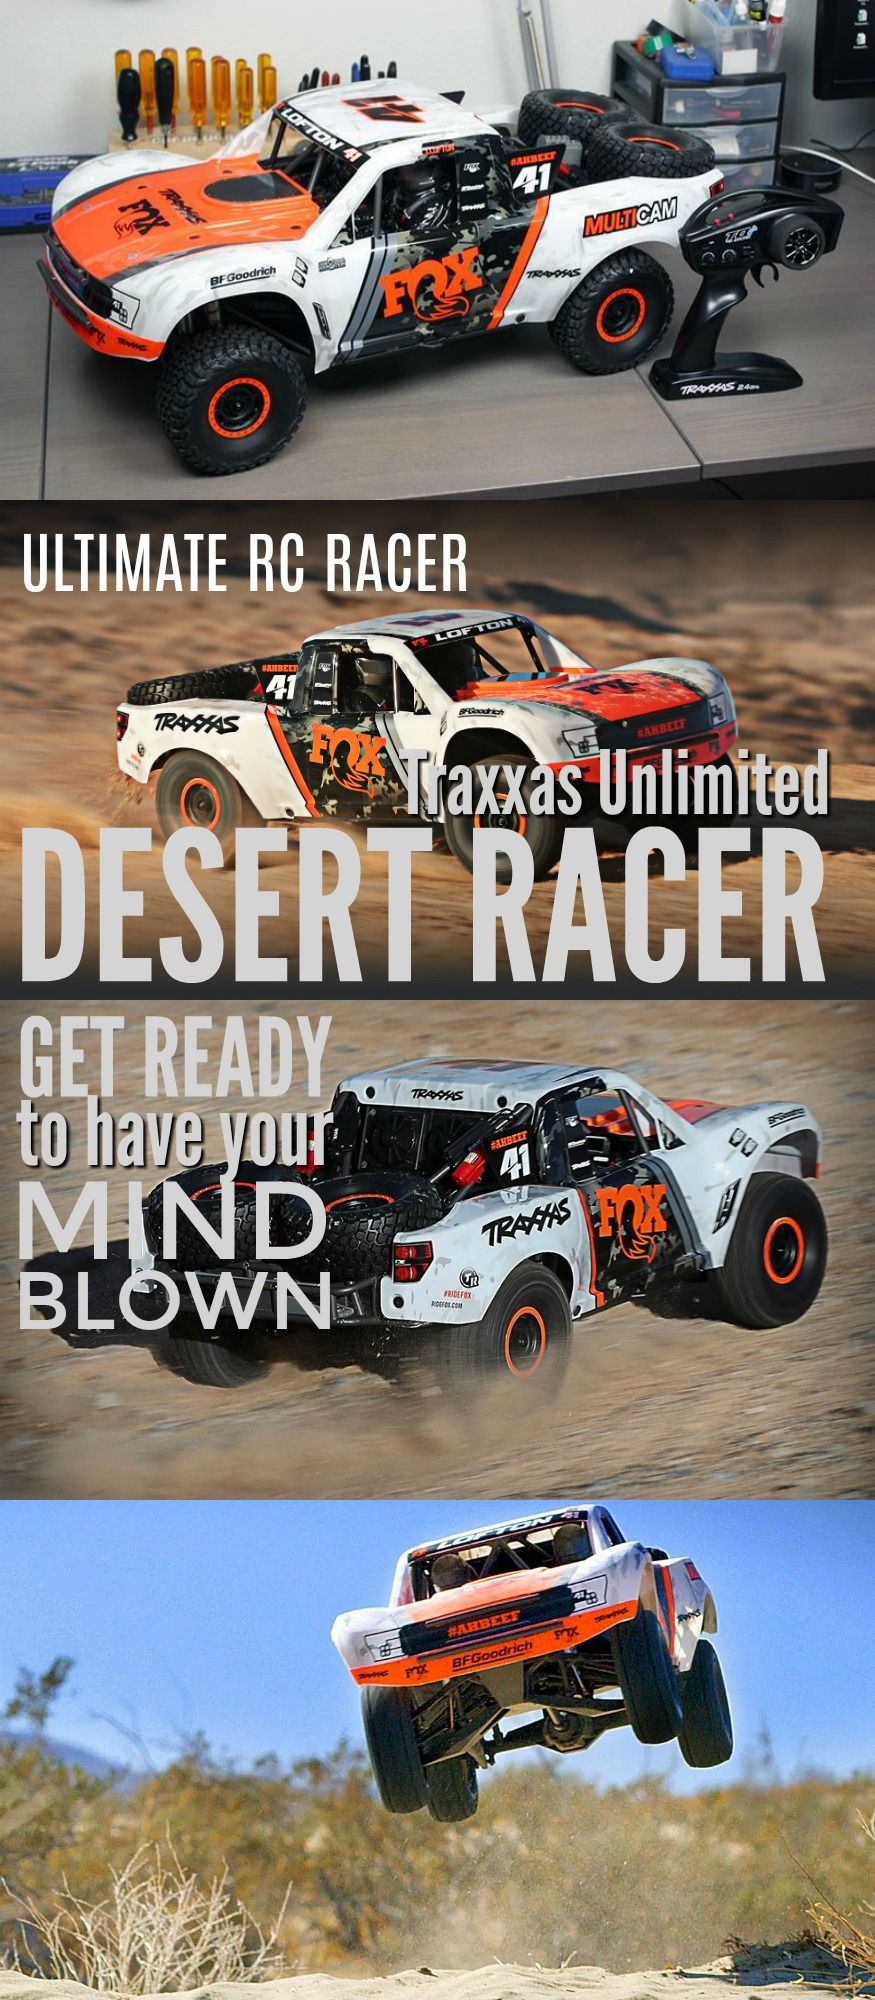 Traxxas are back again with the new and spectacular